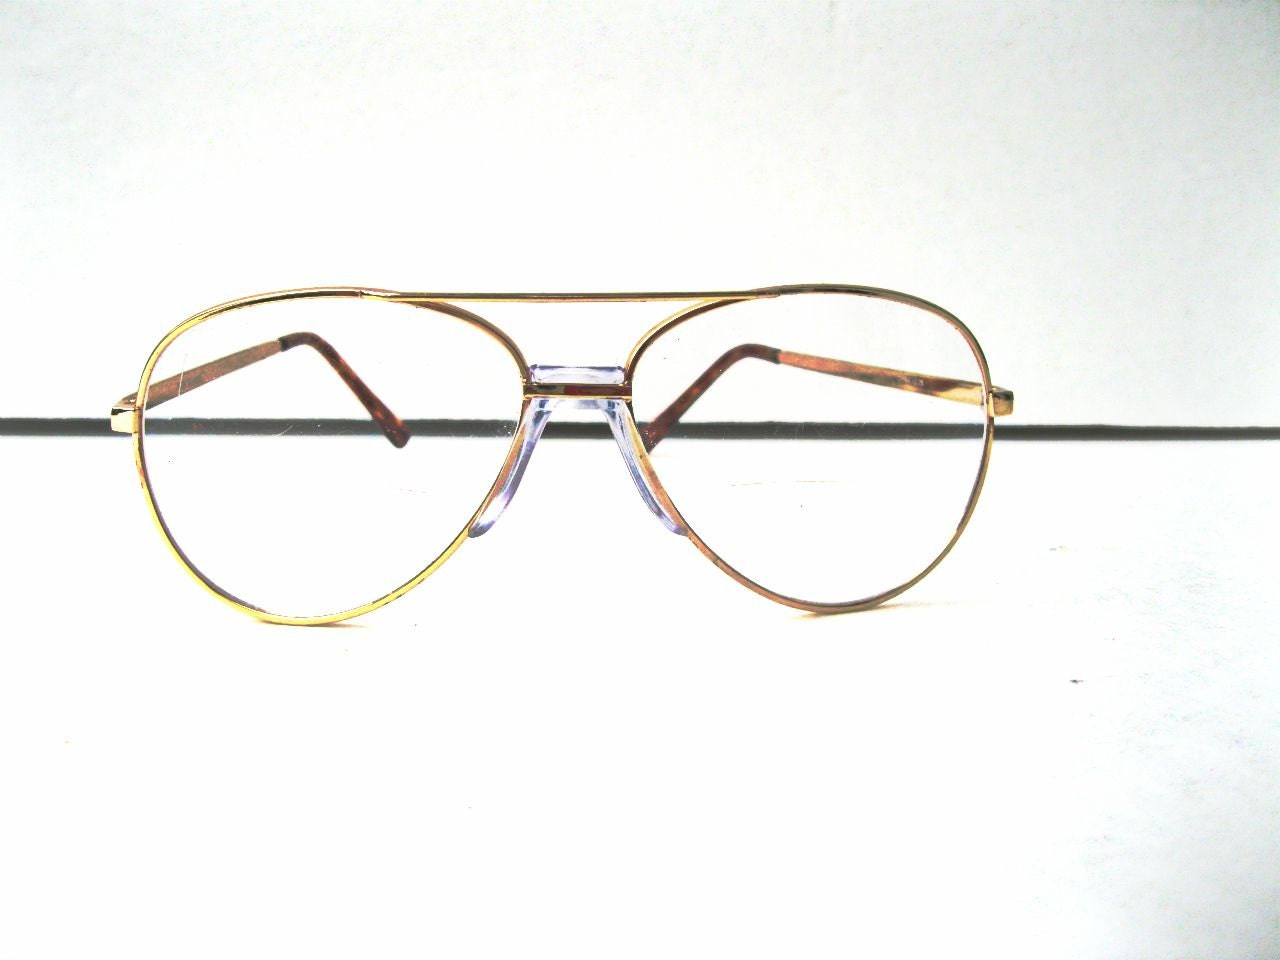 Gold Wire Glasses Frames : Vintage Aviator Eyeglasses Wire Rimmed Gold by ToddysTreasures